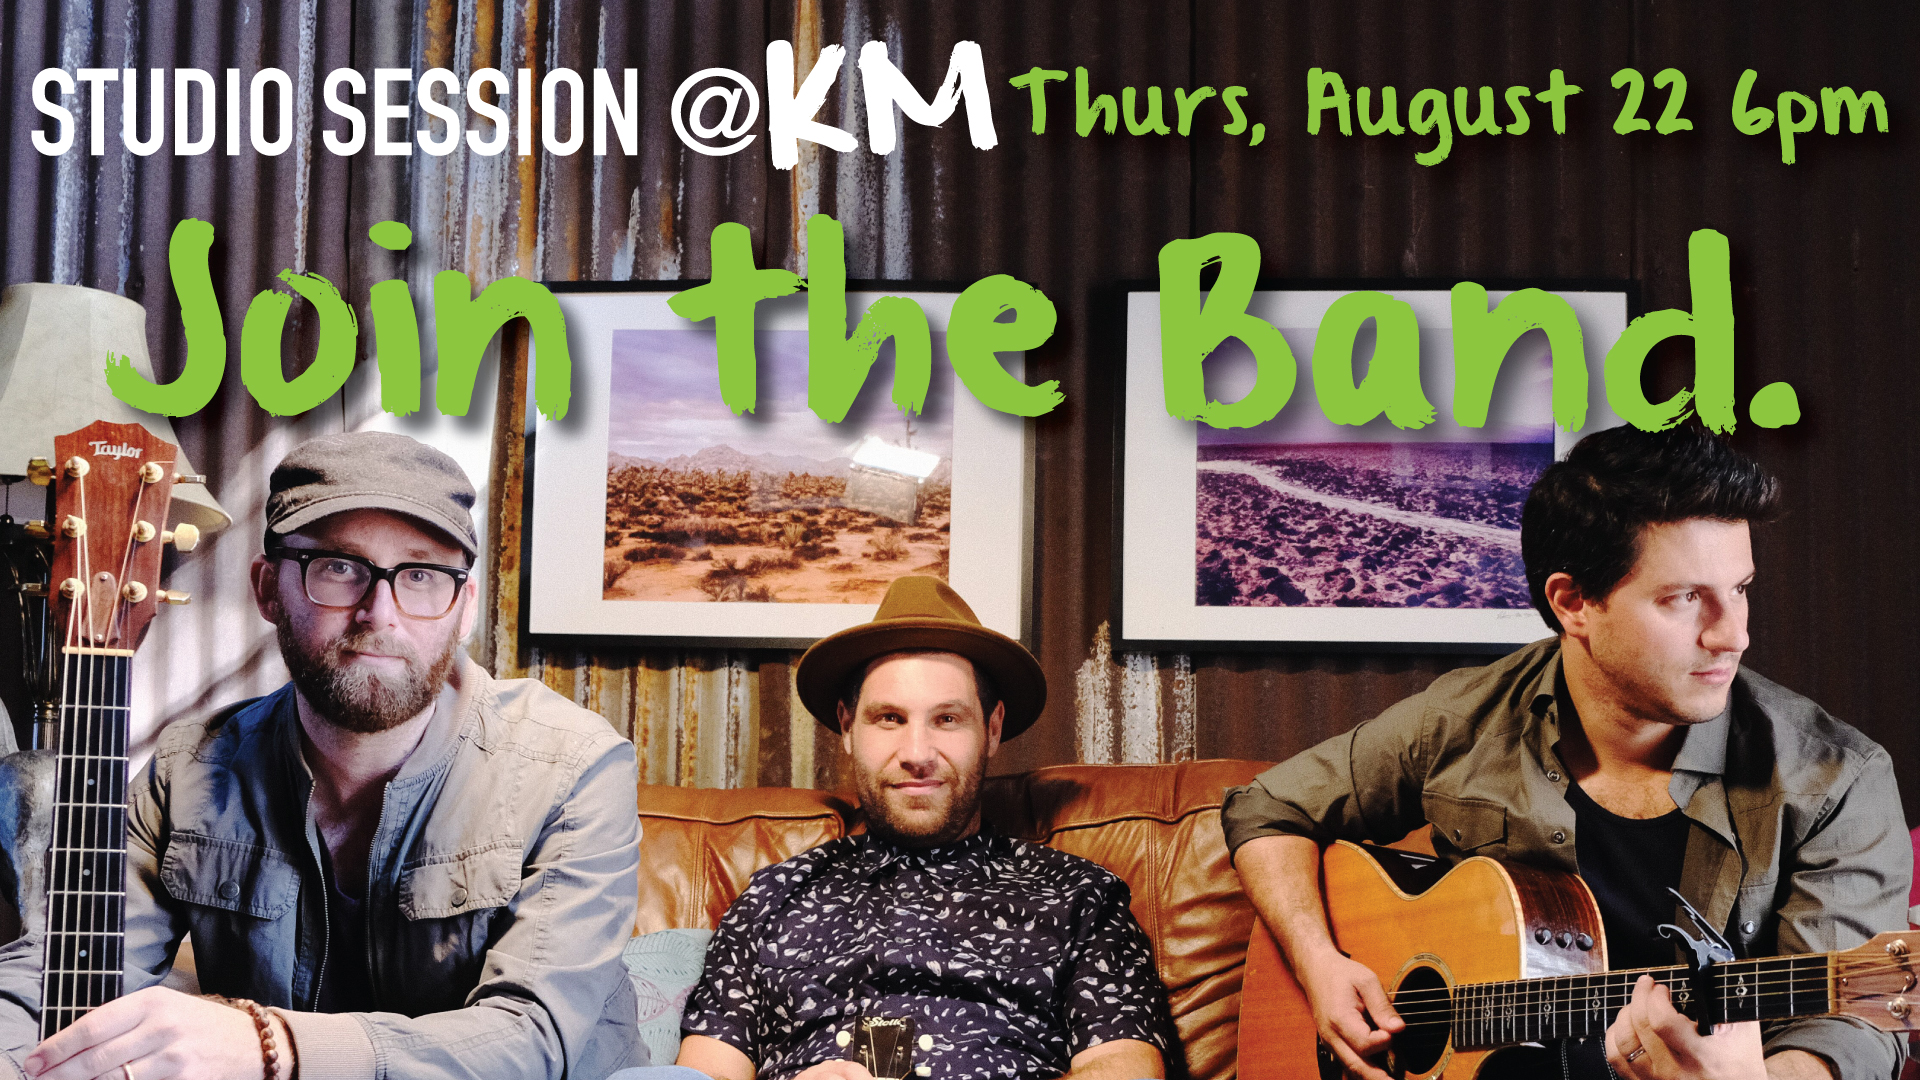 Studio Session @KM – Join the Band